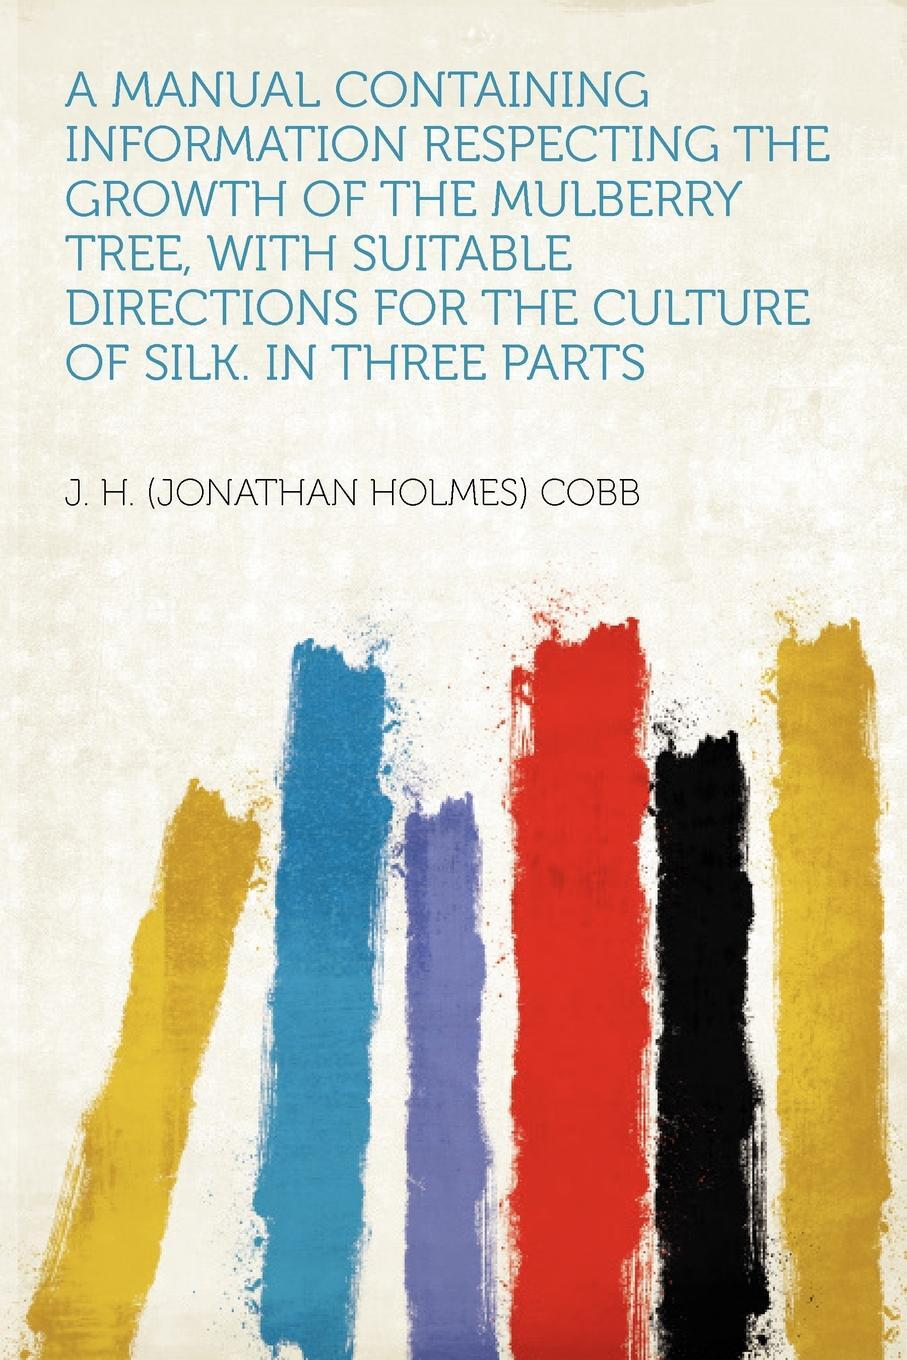 A Manual Containing Information Respecting the Growth of the Mulberry Tree, With Suitable Directions for the Culture of Silk. in Three Parts. J. H. (Jonathan Holmes) Cobb